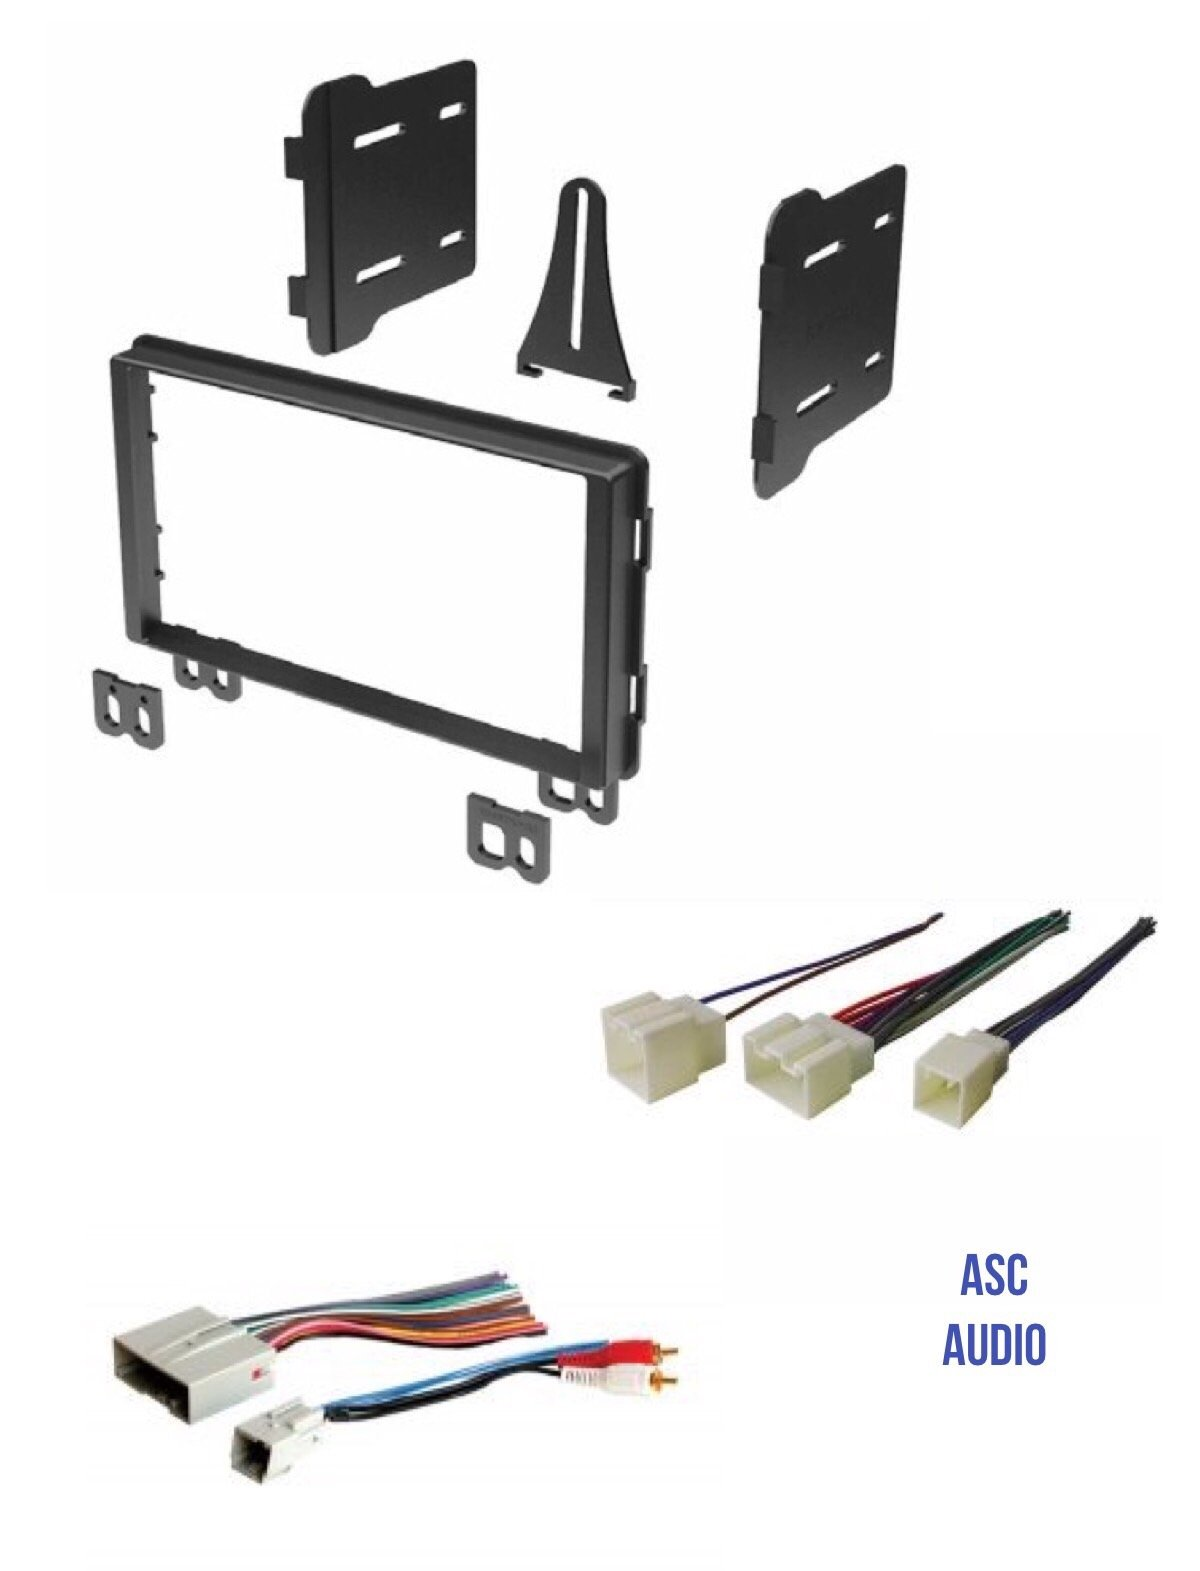 ASC Audio Double Din Car Stereo Radio Install Dash Kit and Wire Harness for select Ford Lincoln Mercury Vehicles - Compatible Vehicles Listed Below